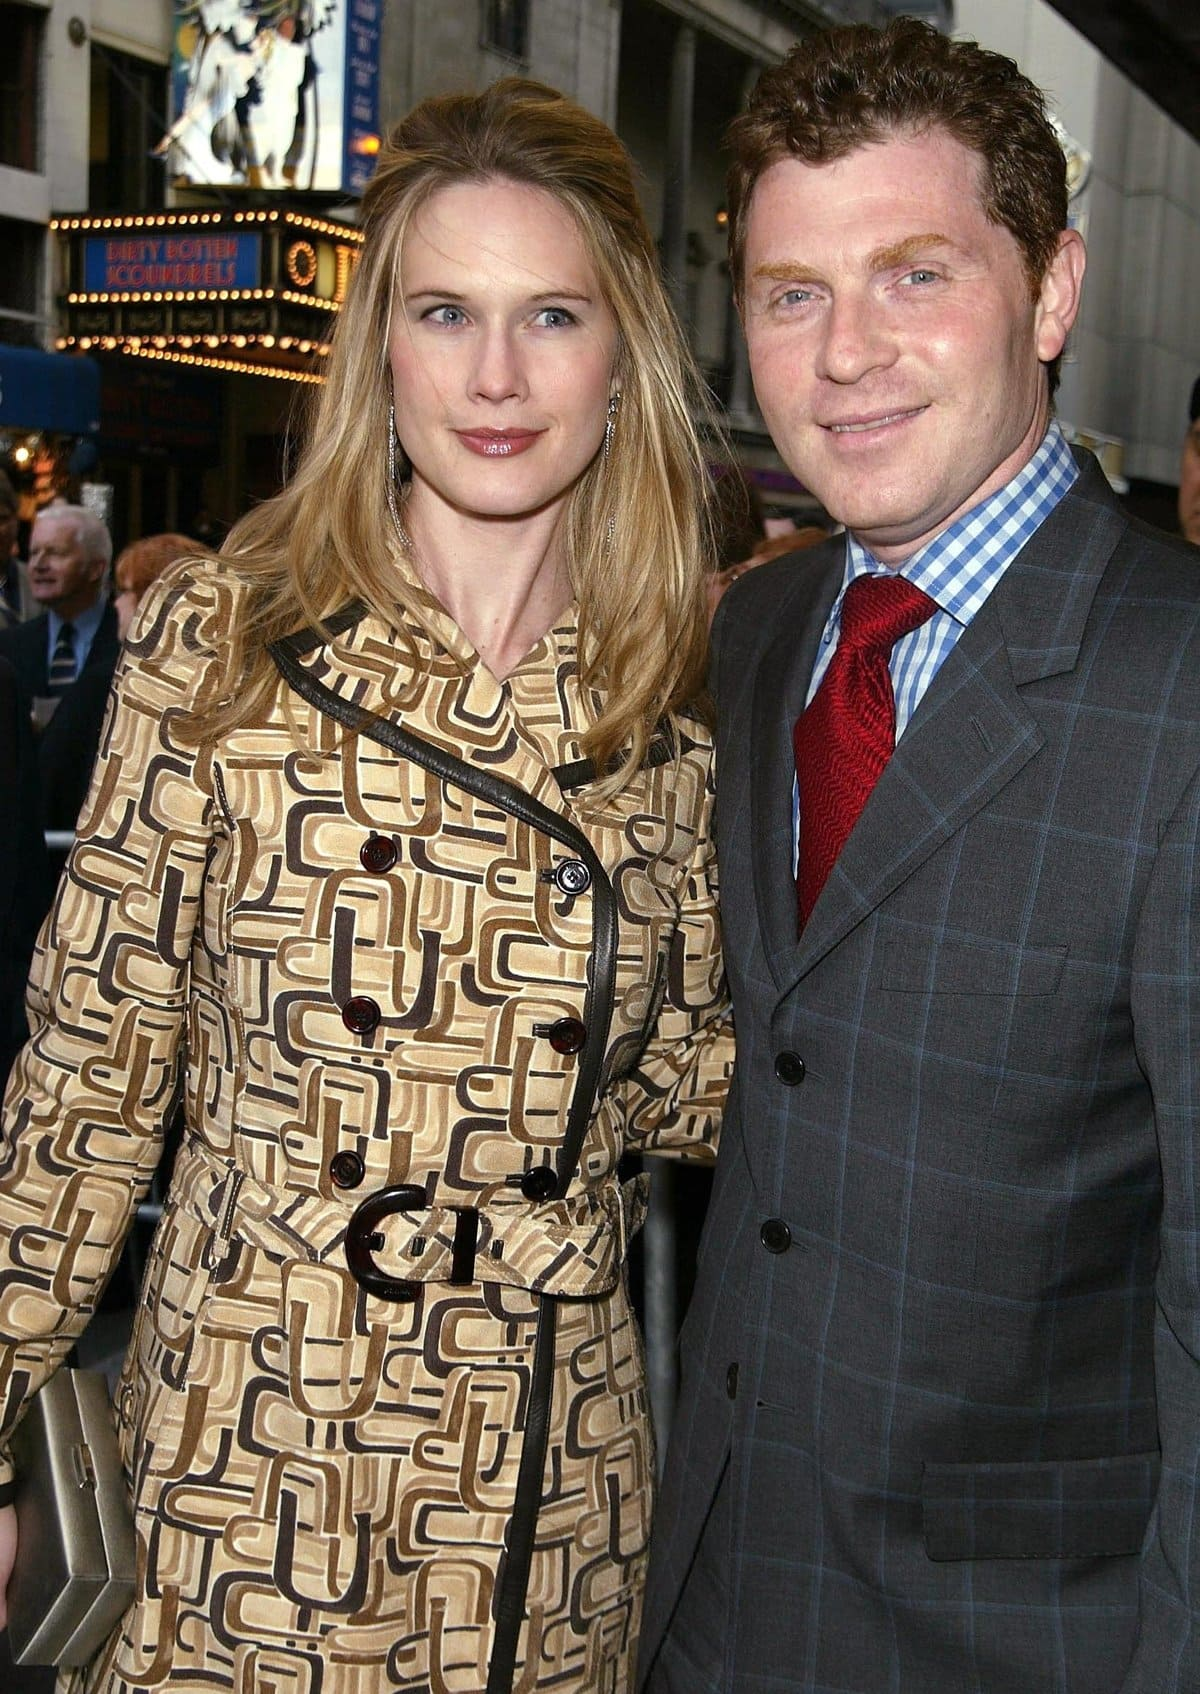 Stephanie March was introduced to Bobby Flay by their mutual friend, actress Mariska Hargitay